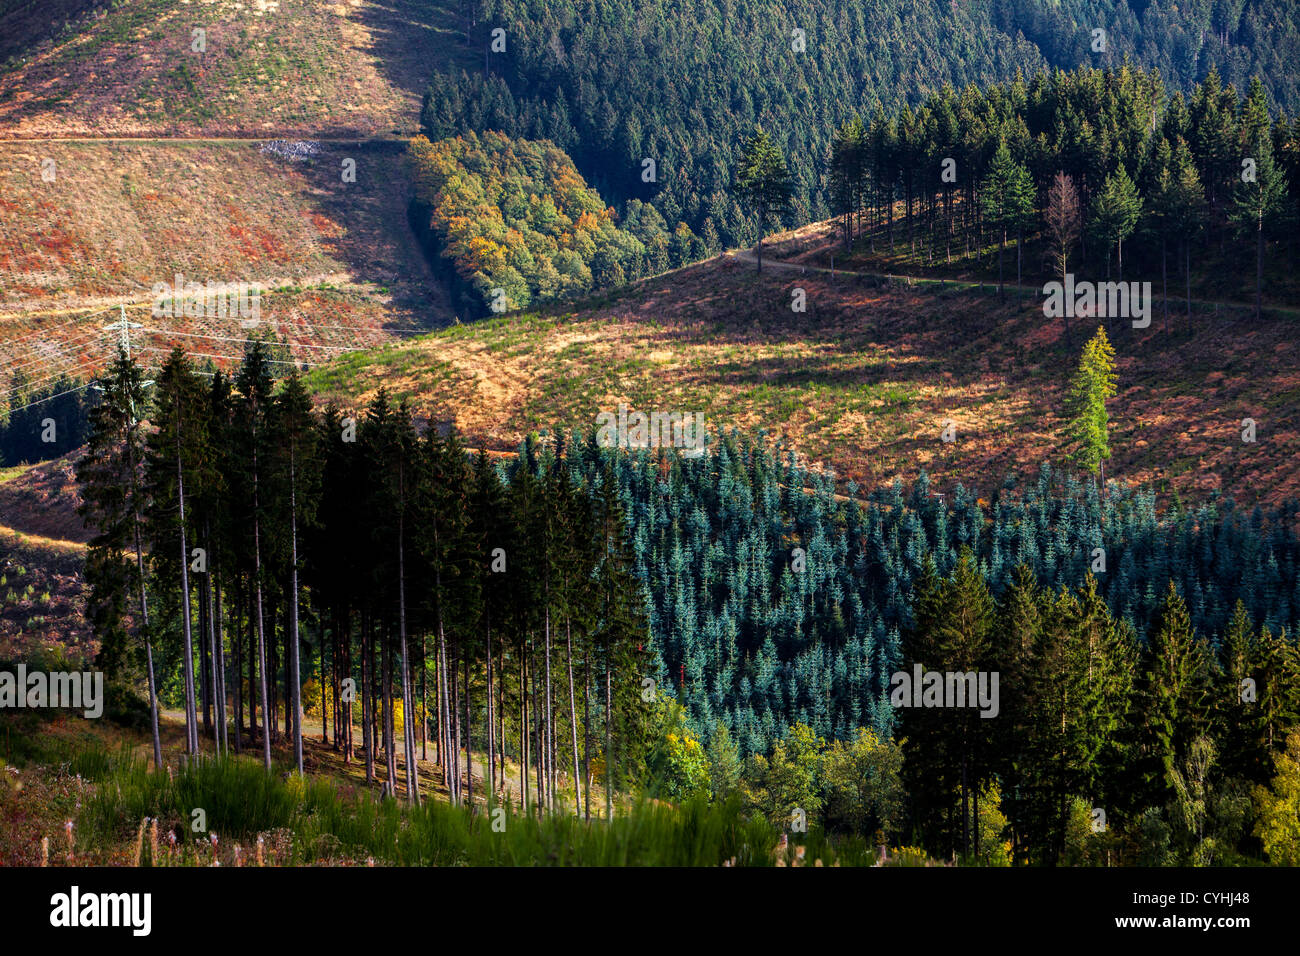 Forest, trees in fall, autumn. Sauerland, a north western region in Germany, Europe. Stock Photo